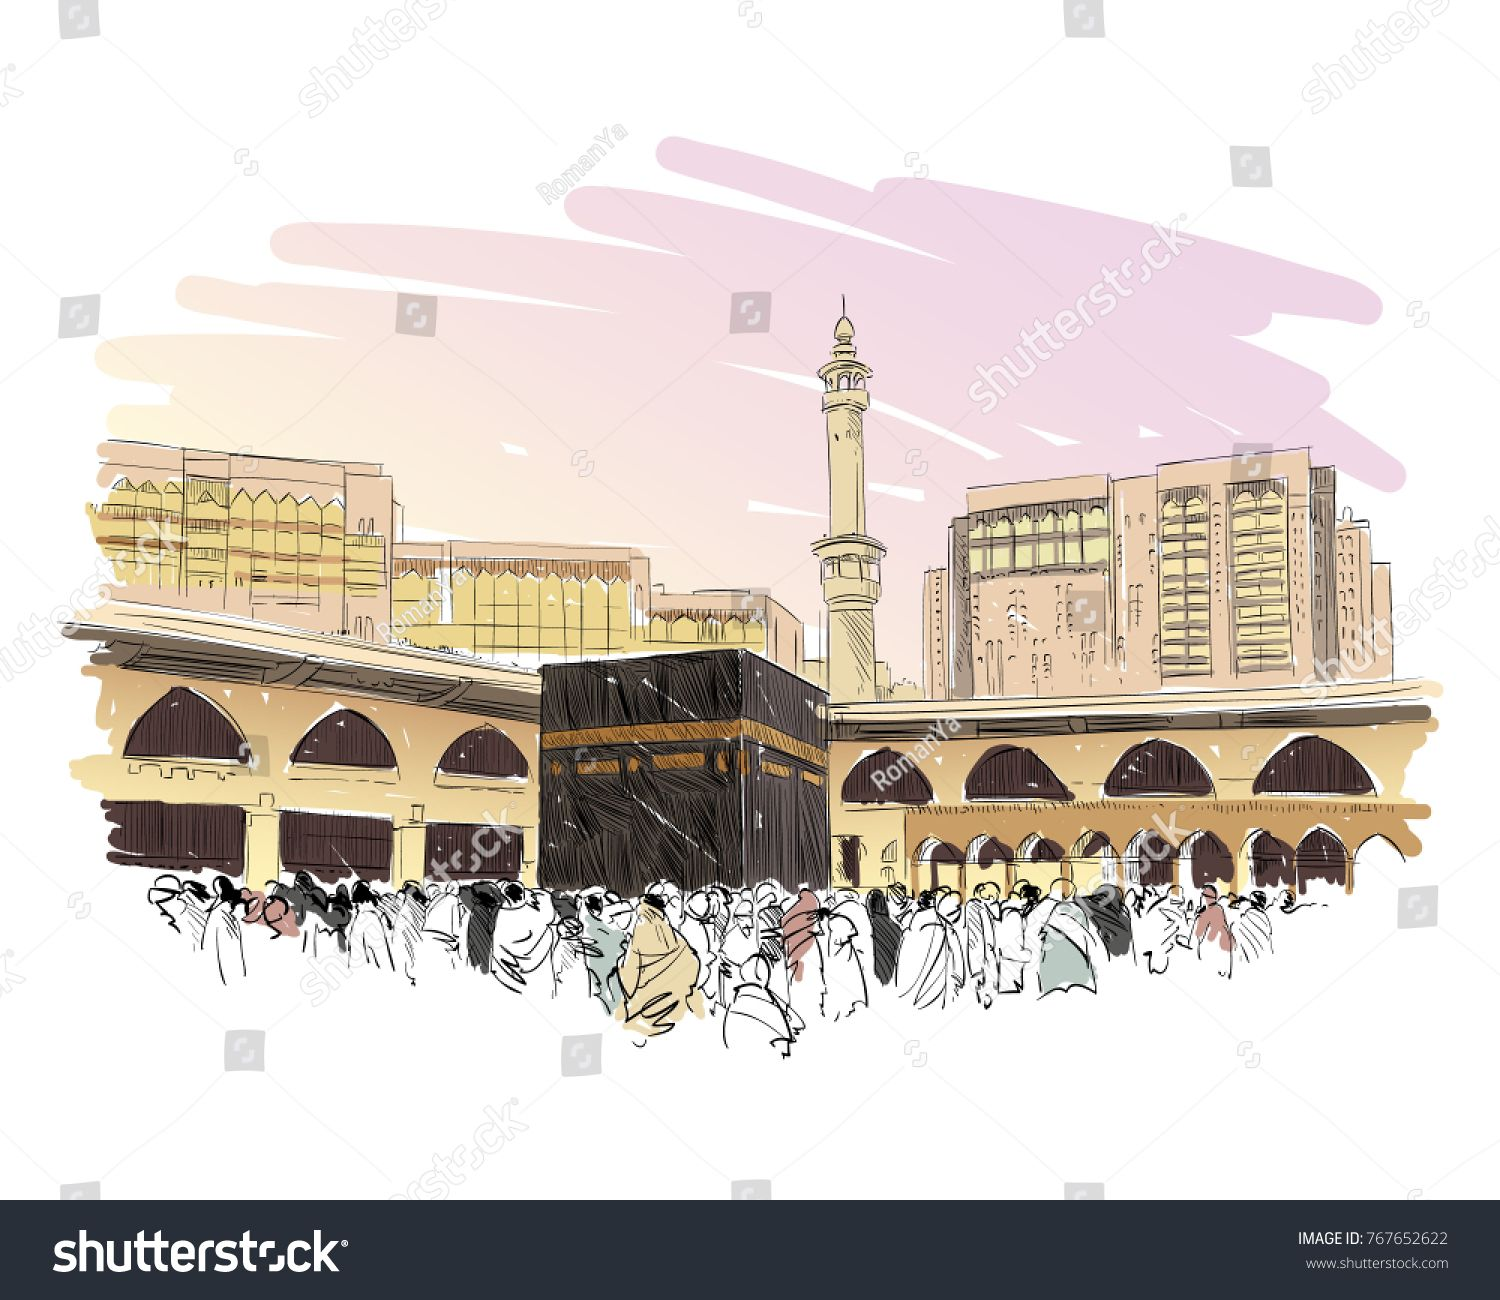 Mecca Saudi Arabia Hand Drawn Sketch Vector Illustration Sponsored Spon Arabia Hand Mecca Saudi In 2020 Mecca How To Draw Hands Pictures